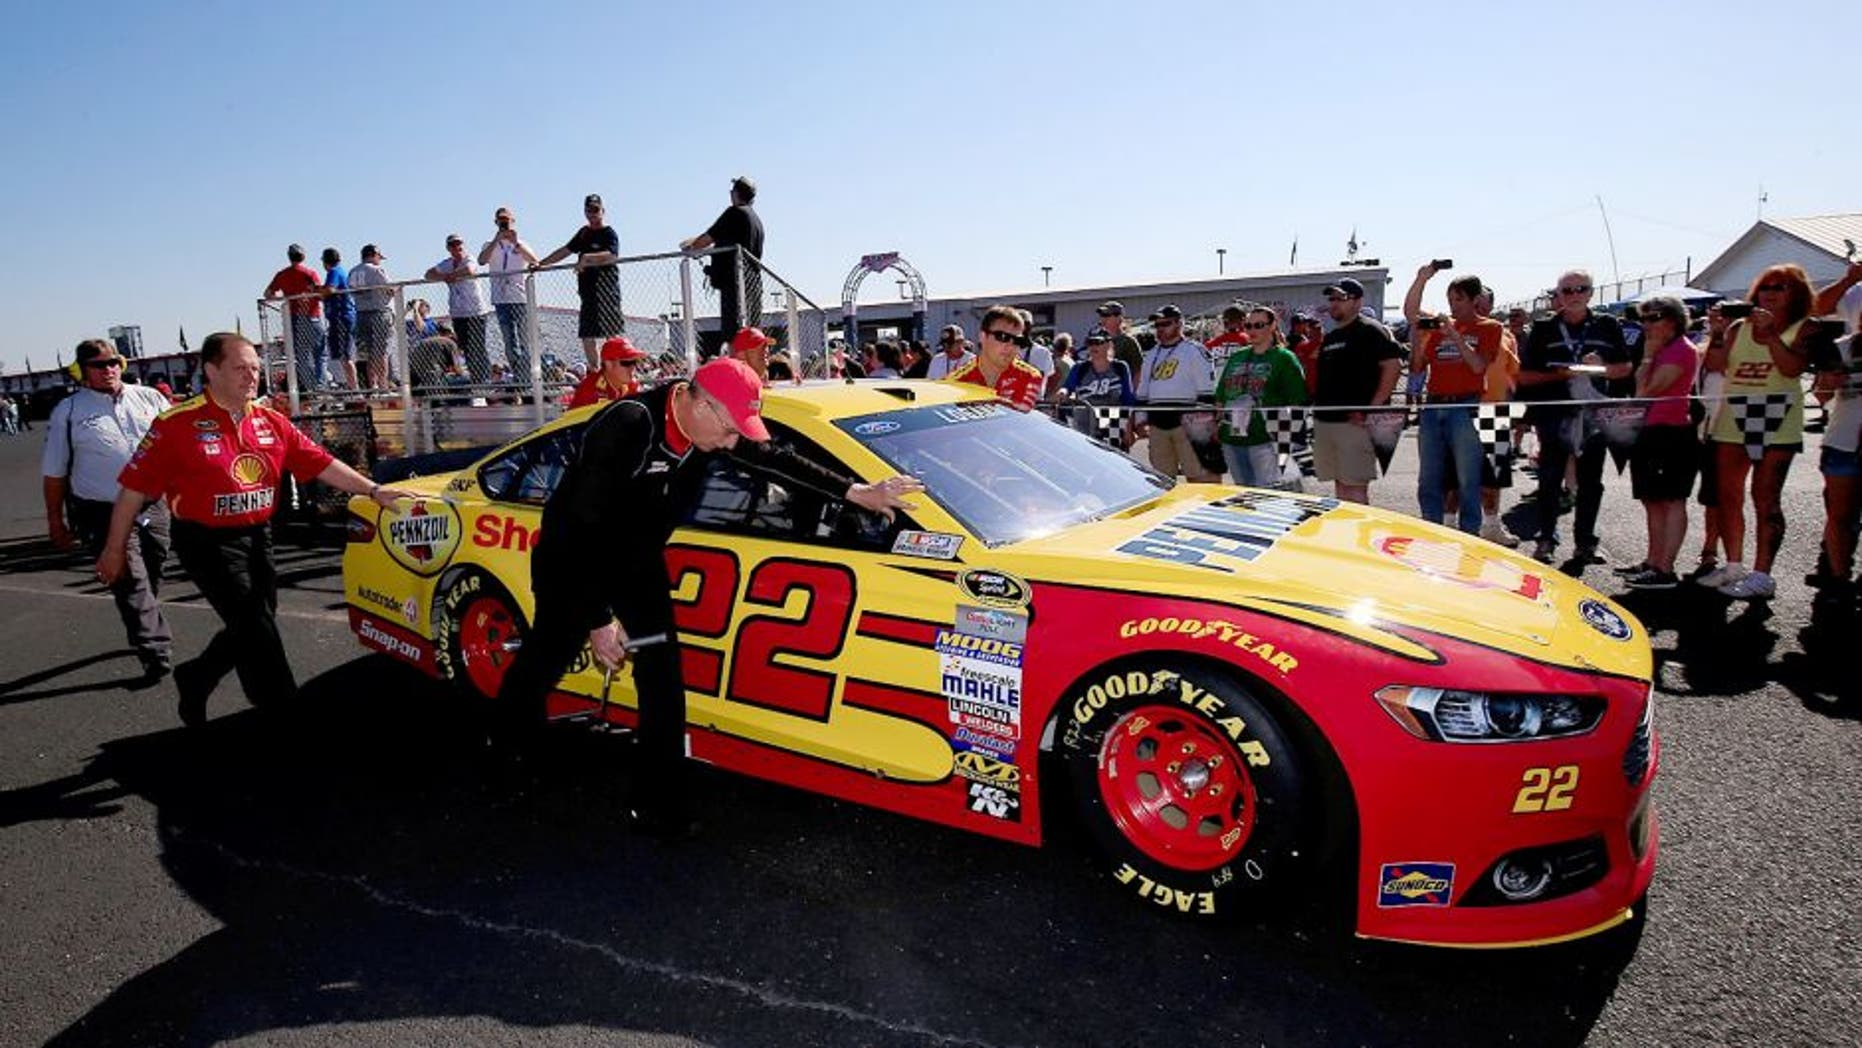 TALLADEGA, AL - MAY 03: Crew members push the car of Joey Logano, driver of the #22 Shell Pennzoil Ford, through the garage area prior to the NASCAR Sprint Cup Series GEICO 500 at Talladega Superspeedway on May 3, 2015 in Talladega, Alabama. (Photo by Chris Trotman/NASCAR via Getty Images)